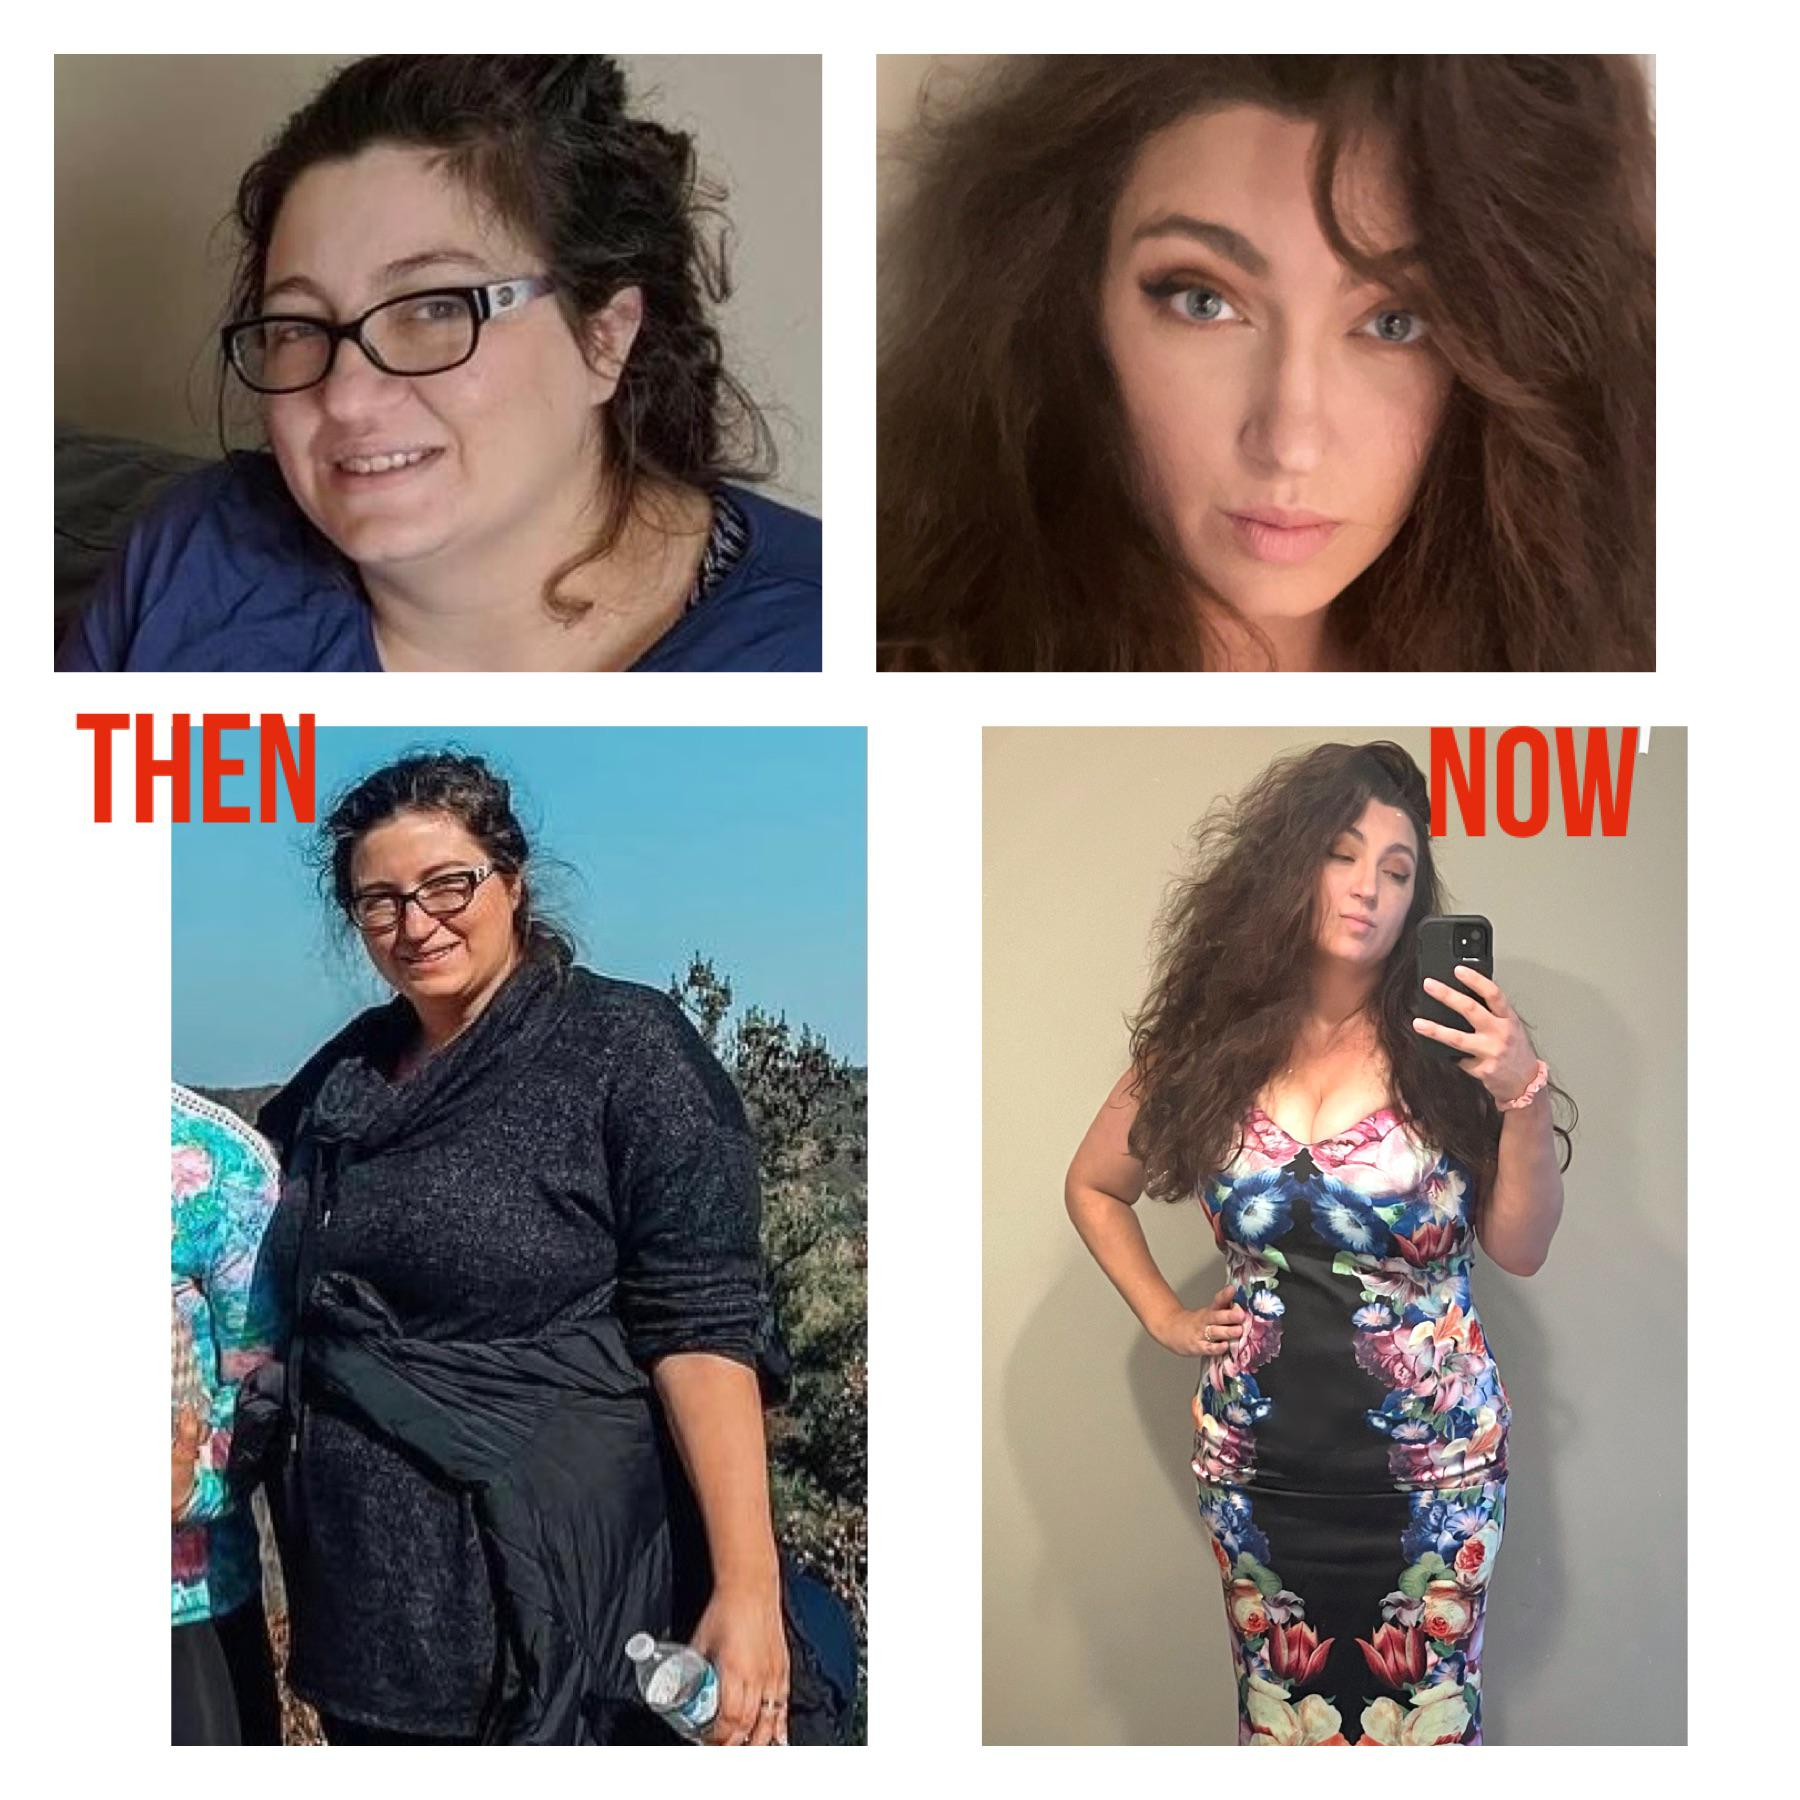 70 lbs Weight Loss 5 foot 9 Female 270 lbs to 200 lbs